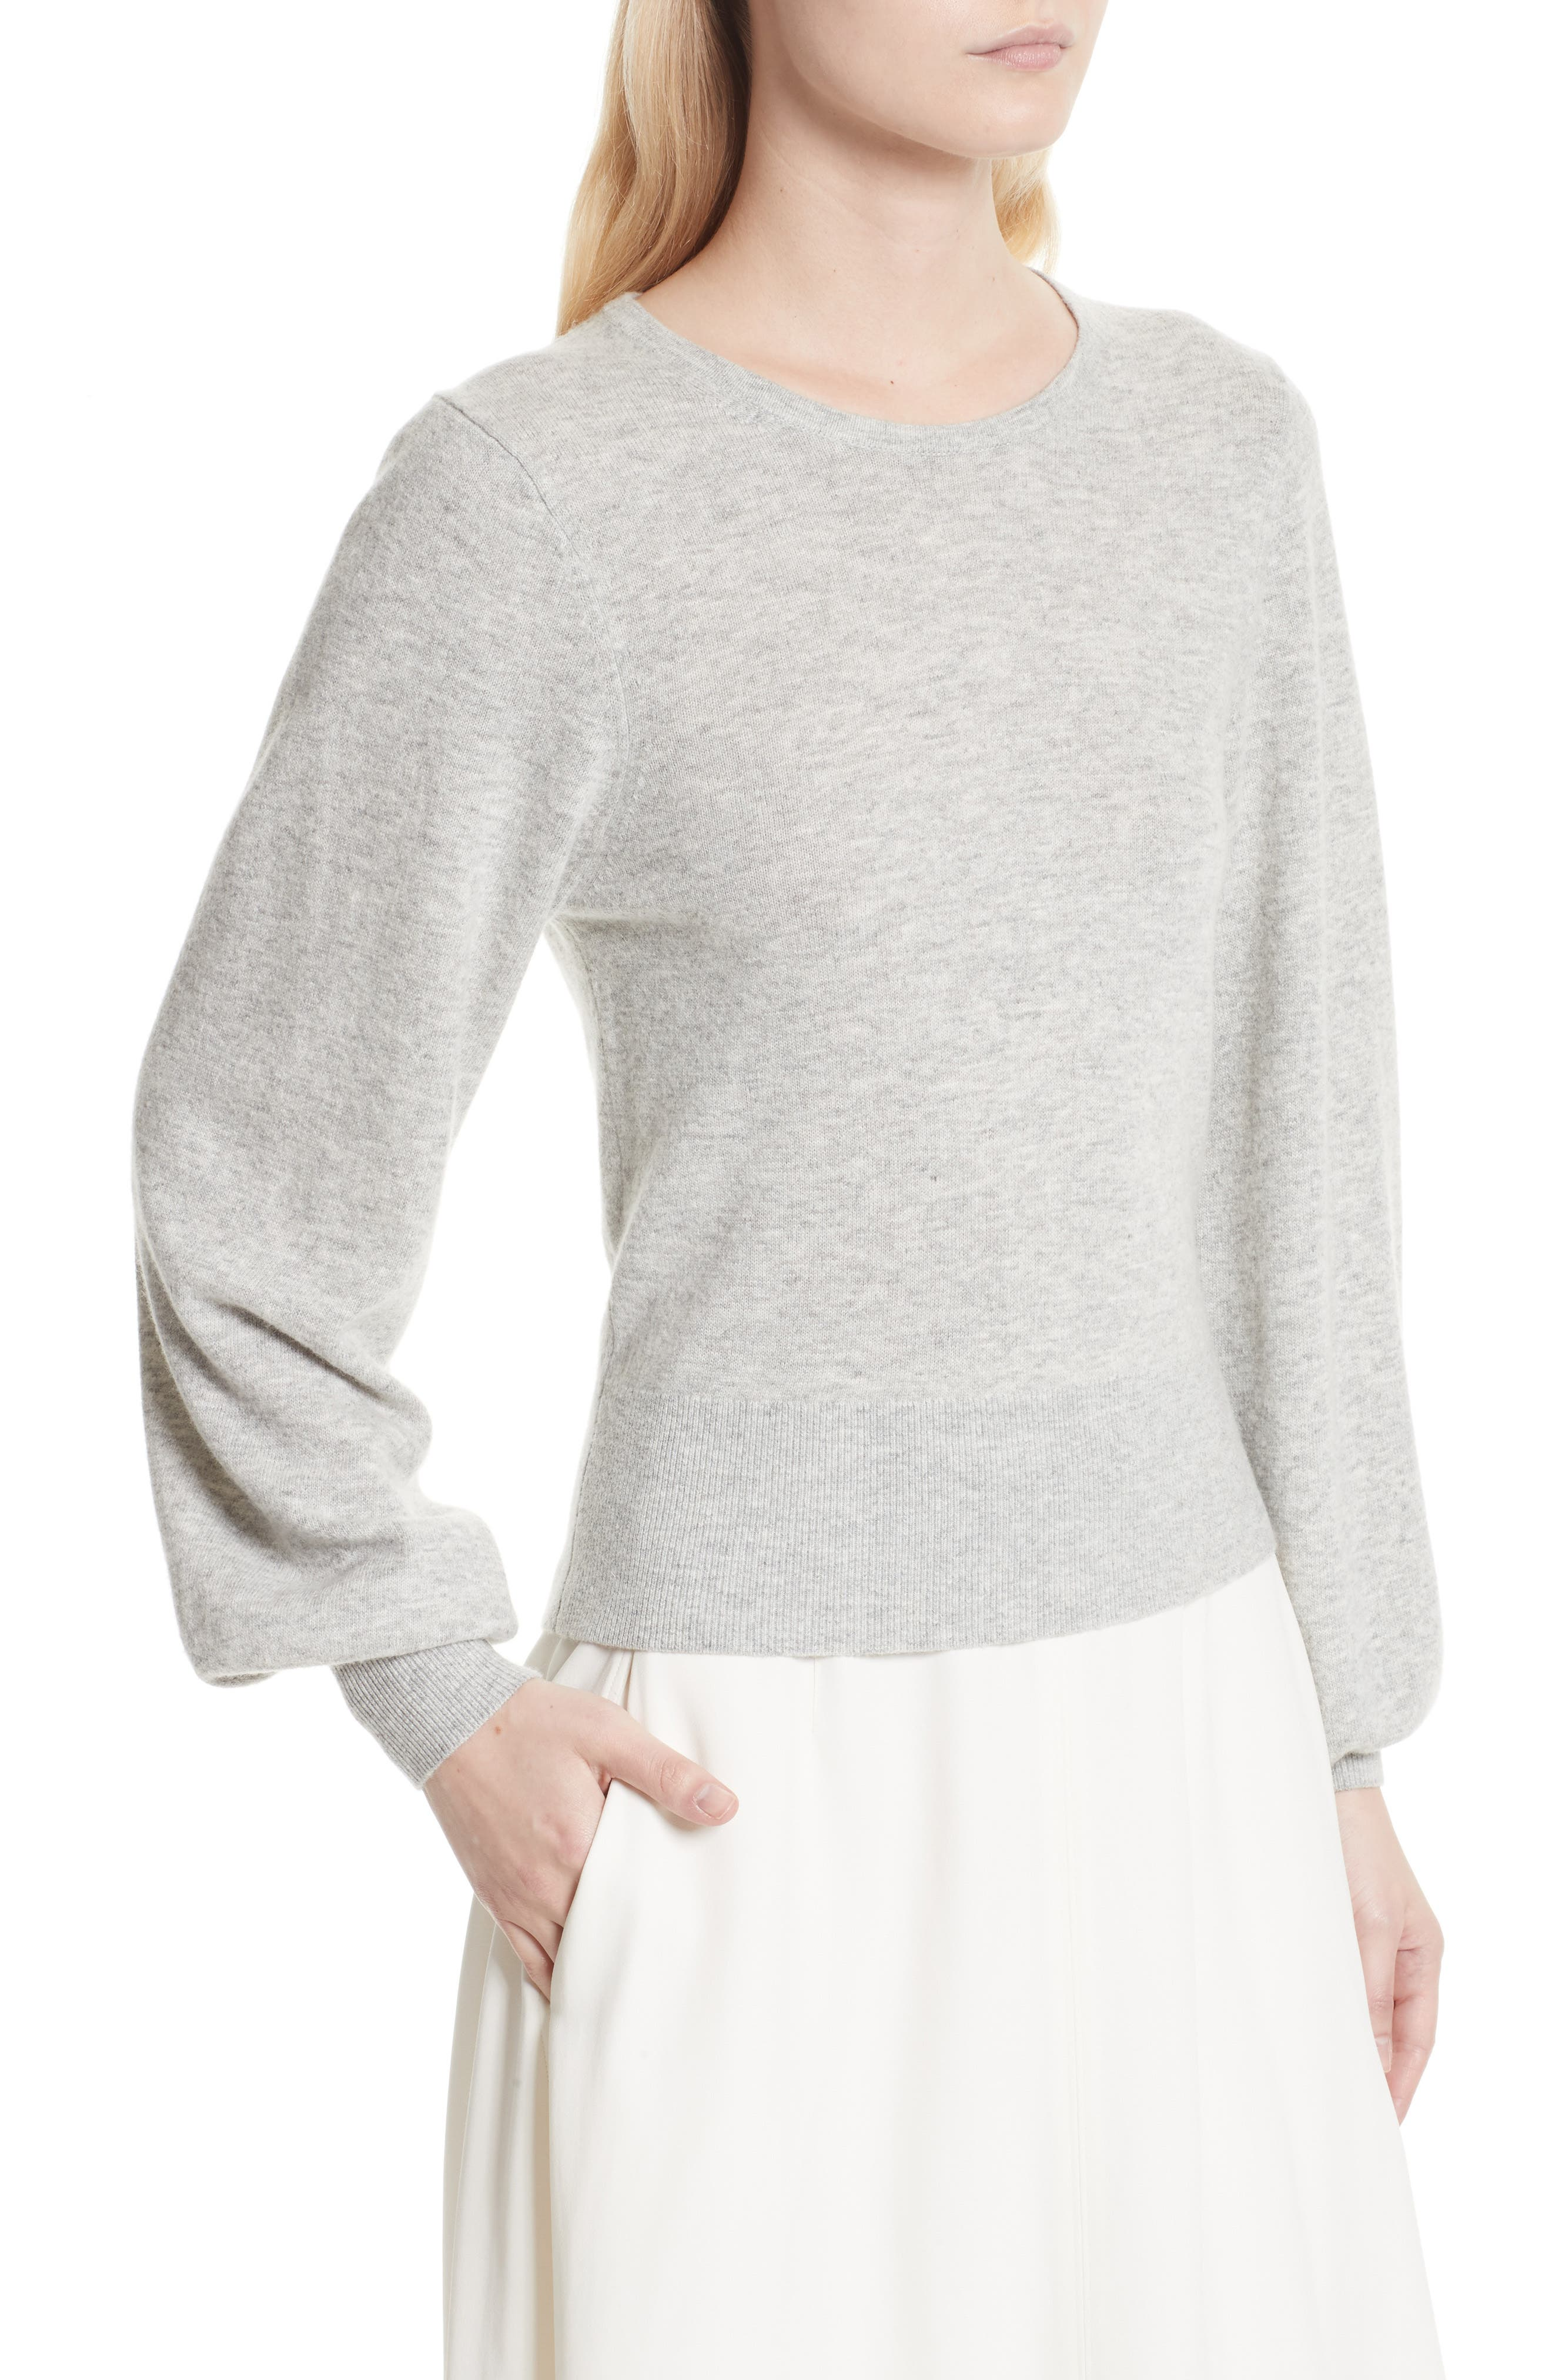 Bretta Sweater,                             Alternate thumbnail 5, color,                             Heather Grey